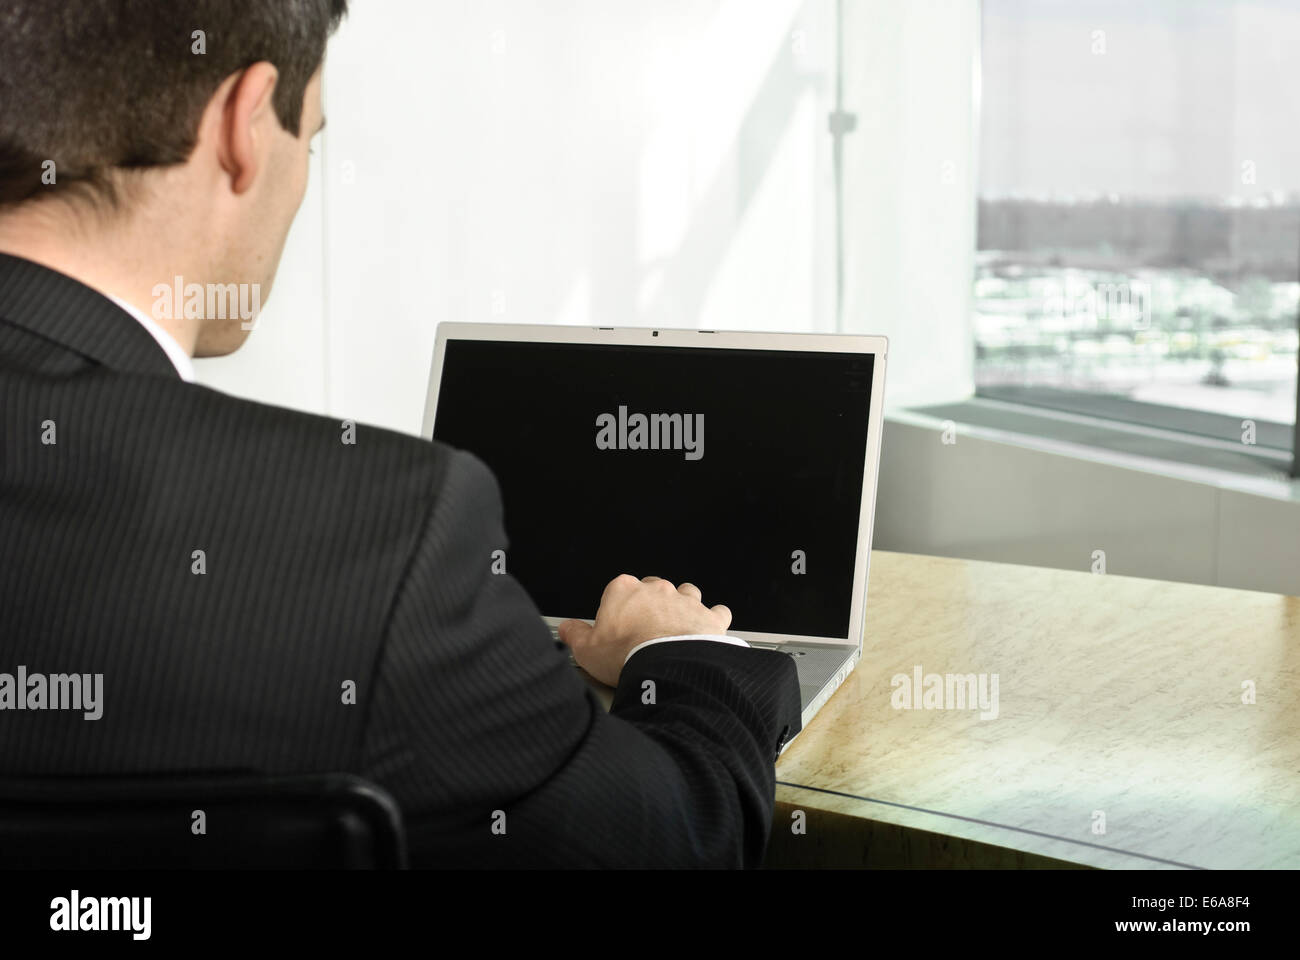 palmtop,business,office,workplace,mobile communication,businessman - Stock Image